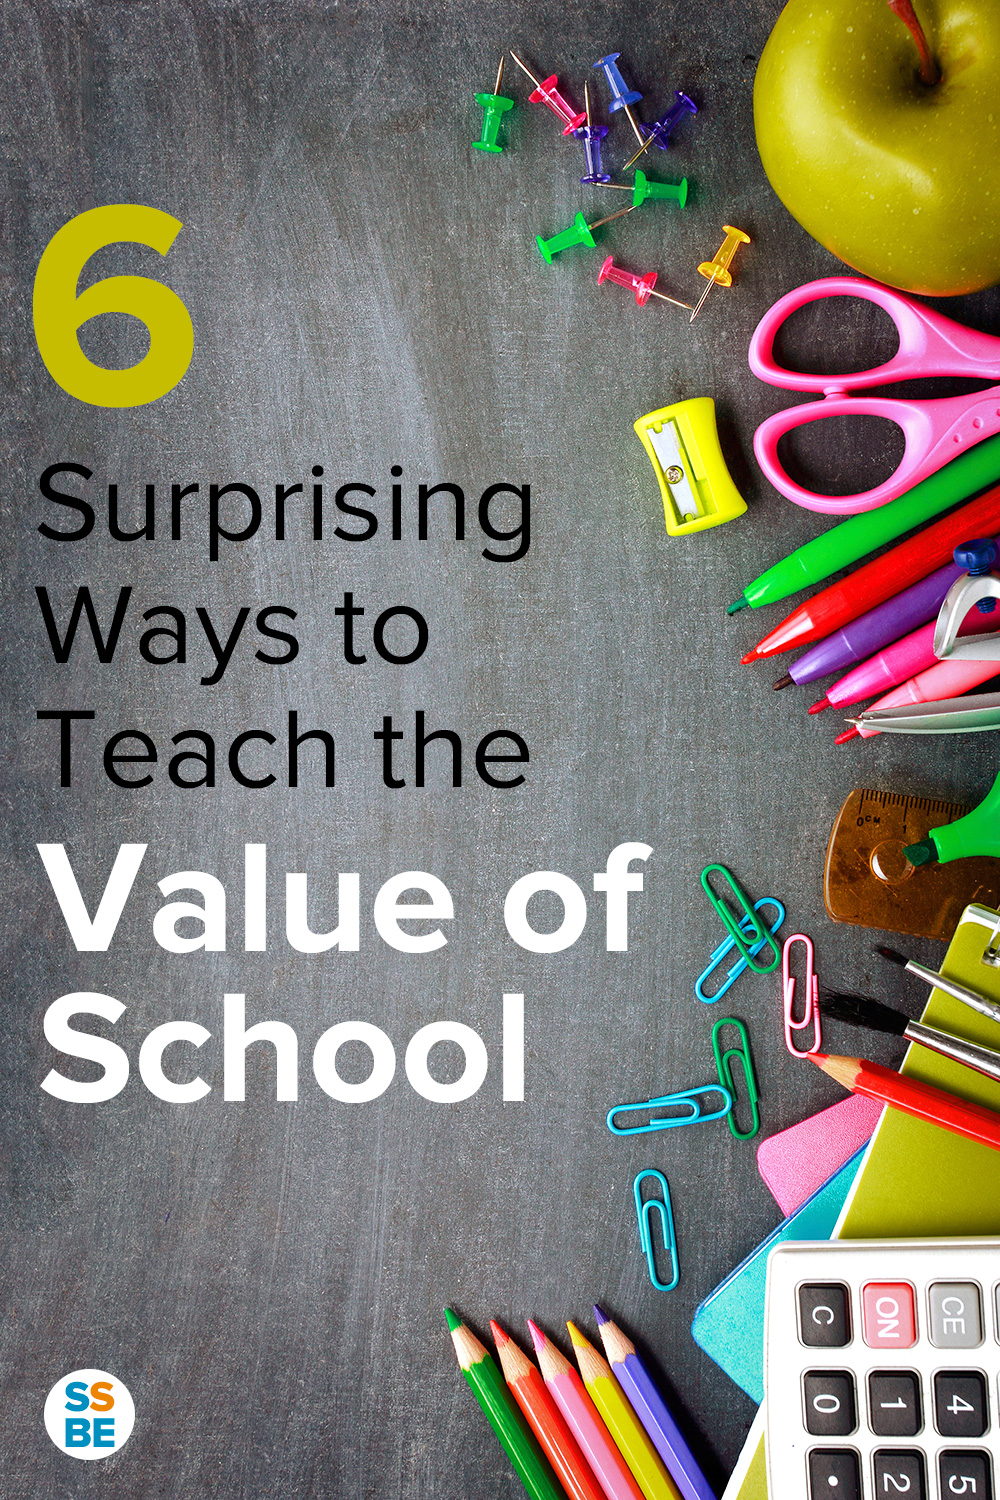 6 Surprising Ways to Teach the Value of School